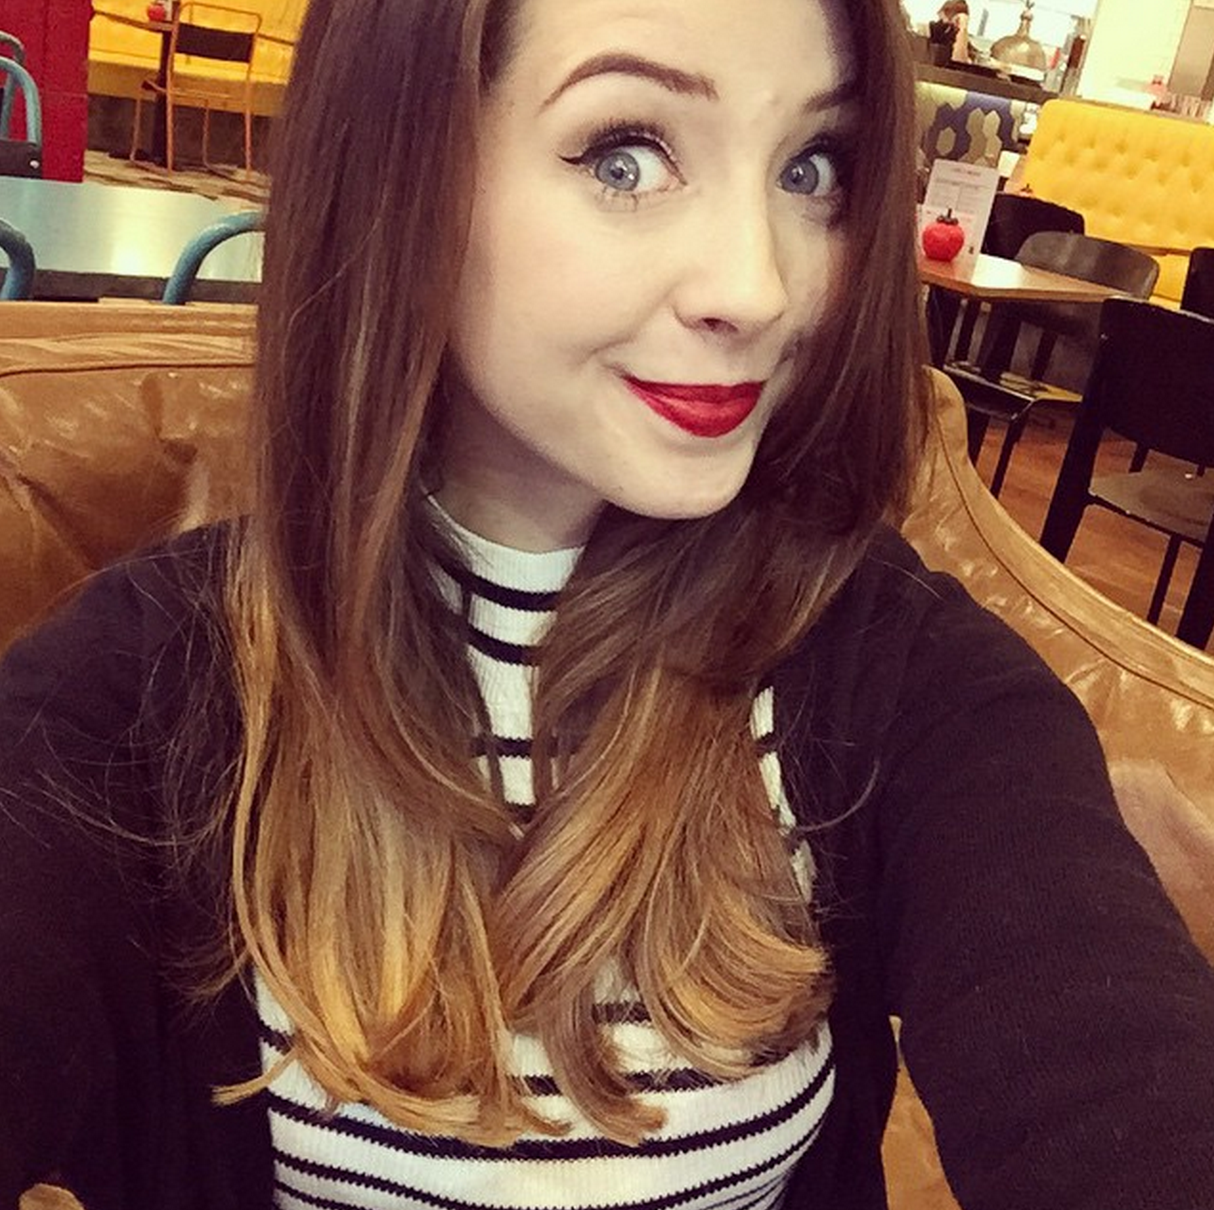 Zoellas had a pretty dramatic haircut and were totally obsessed with it